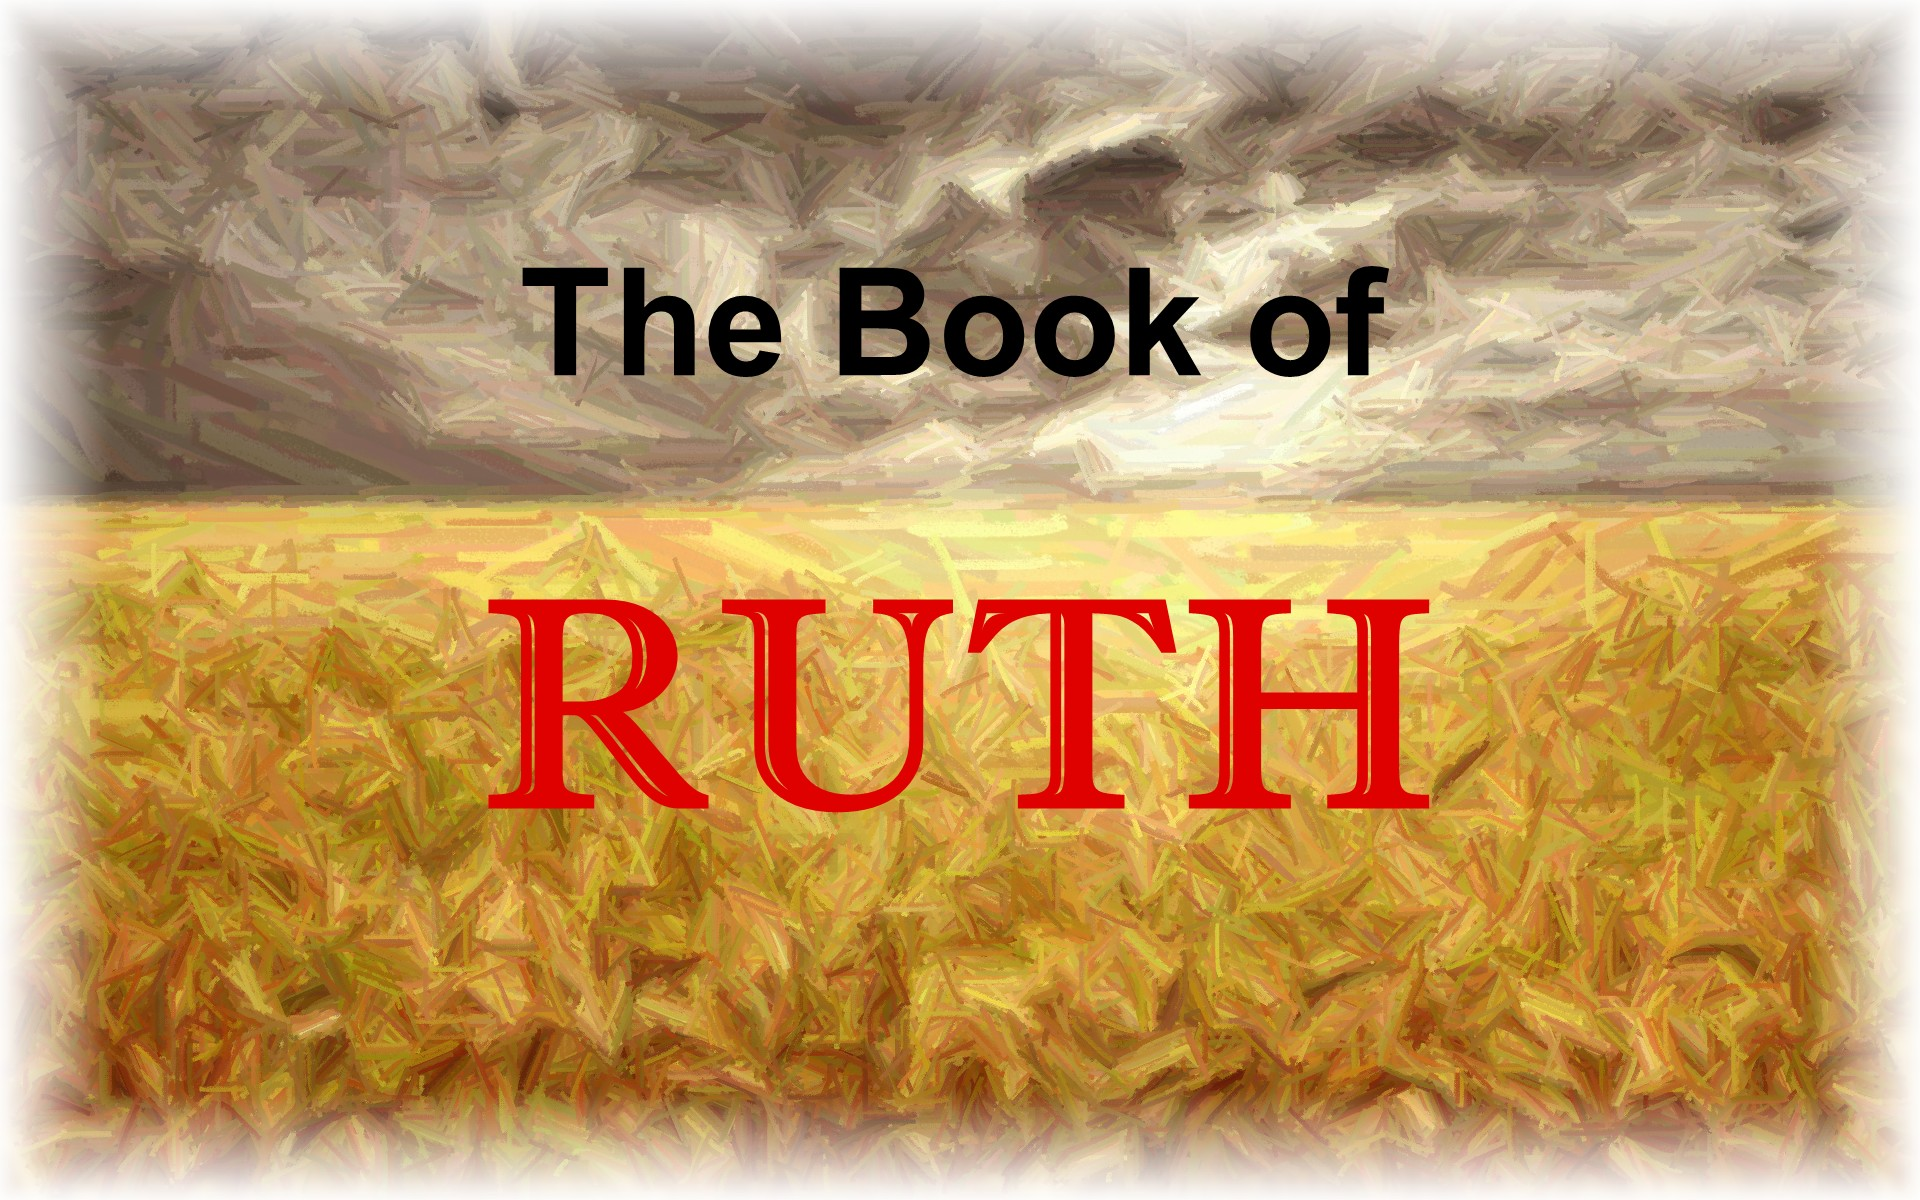 the book of ruth The book of ruth ( hebrew : מגילת רות ‎‎, ashkenazi pronunciation : , megilath ruth, the scroll of ruth, one of the five megillot ) is included in the third division, or the writings ( ketuvim ), of the hebrew bible  in the christian canon it is treated as a history book and placed between judges and 1 samuel , as it is set in.